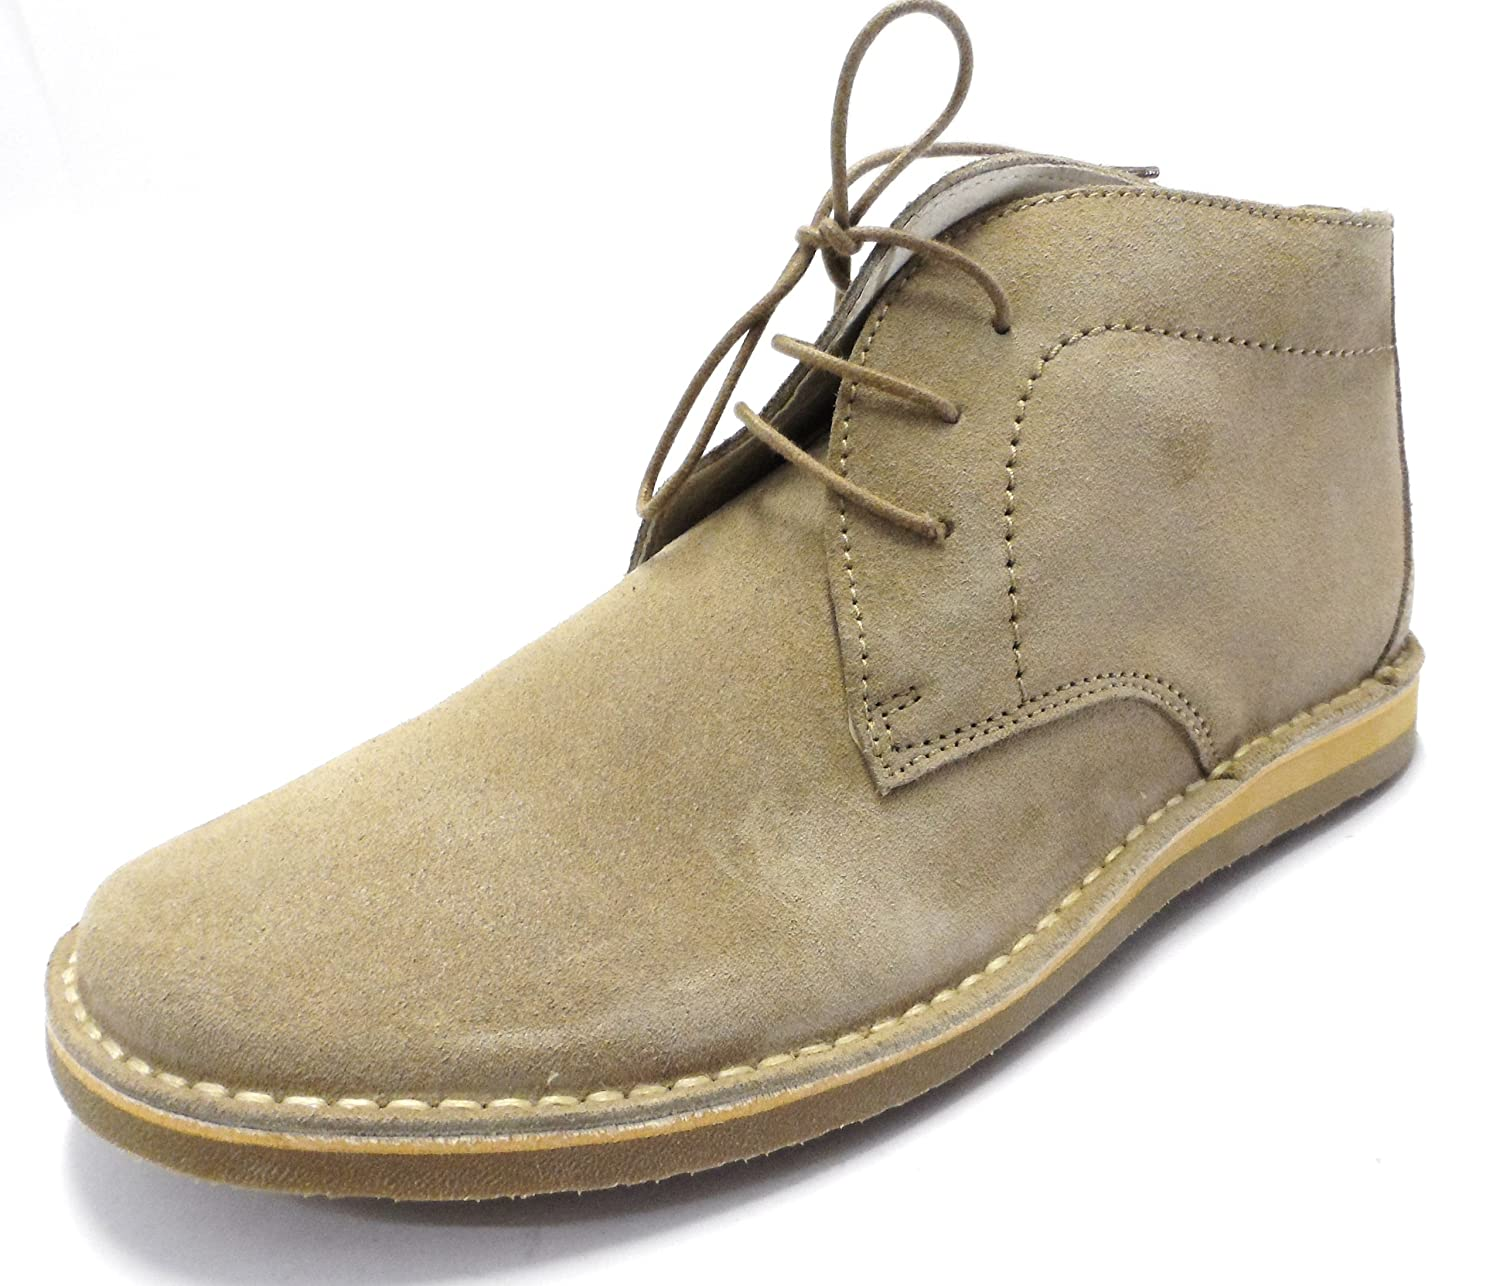 60s 70s Men's Clothing UK | Shirts, Trousers, Shoes Ikon Nomad Mens Desert Boots In Beige . £54.99 AT vintagedancer.com